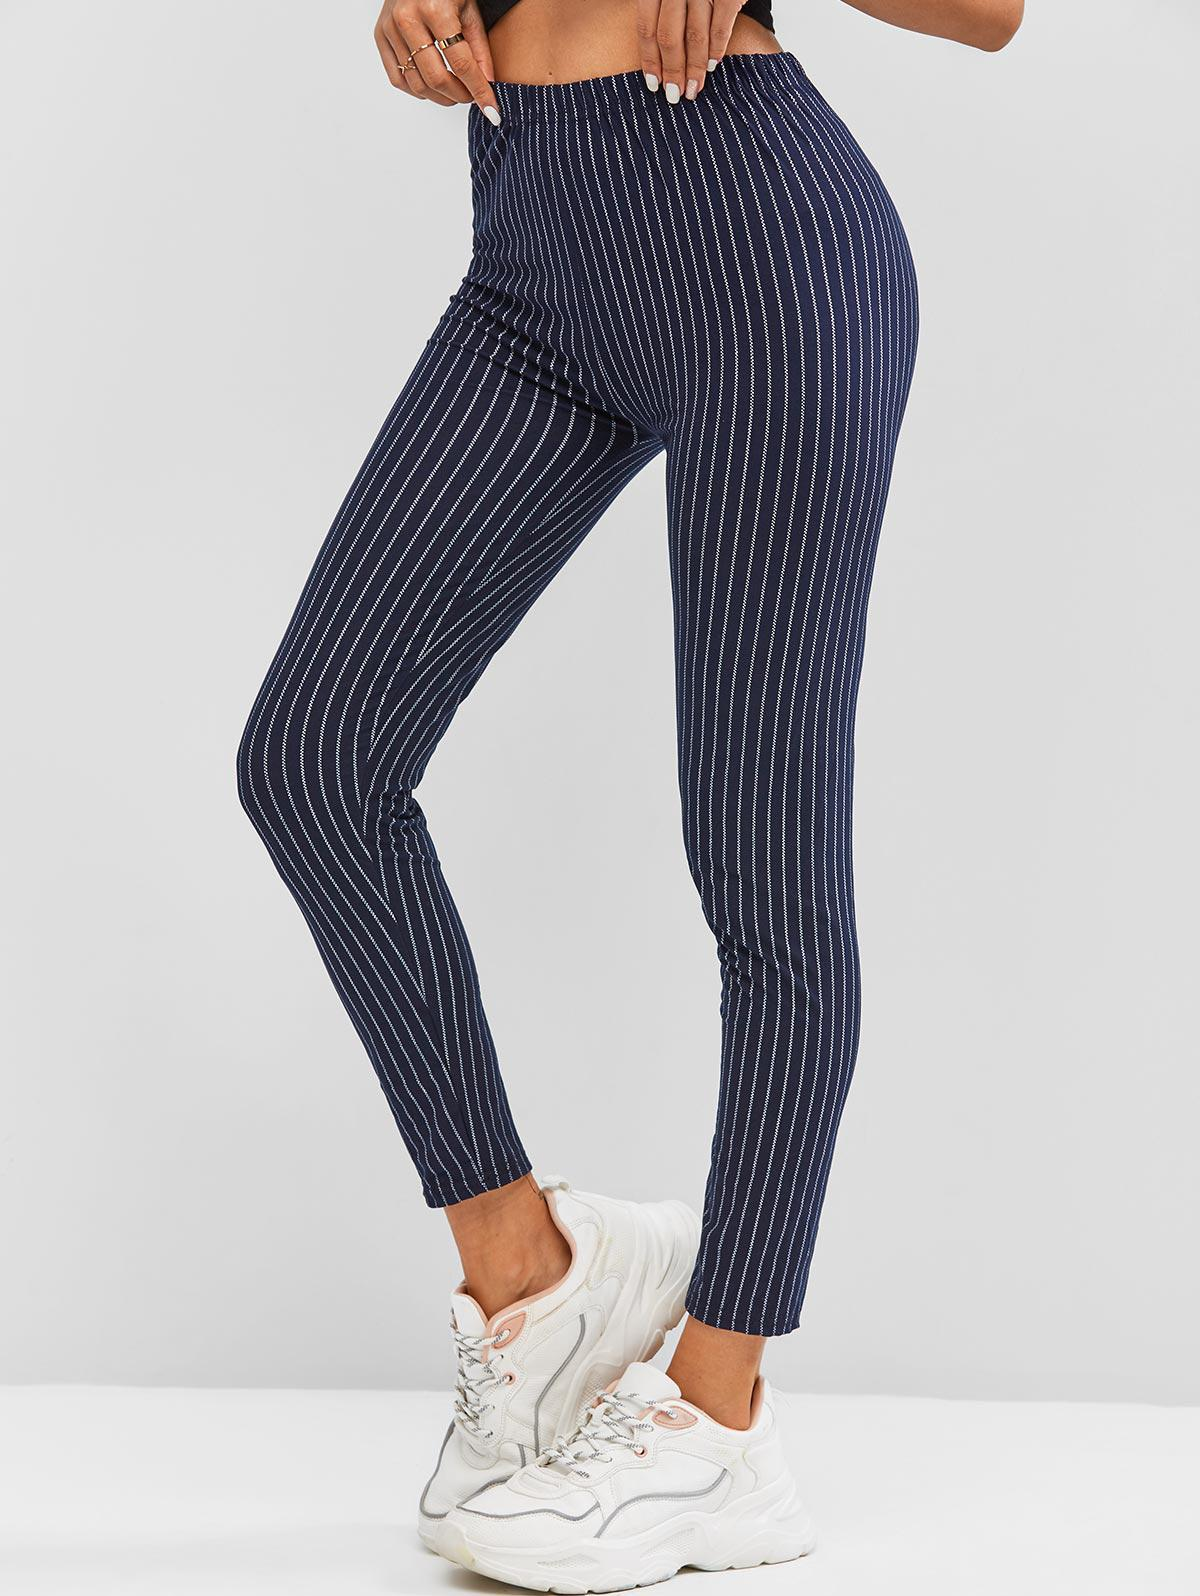 High Waisted Contrast Stripes Leggings